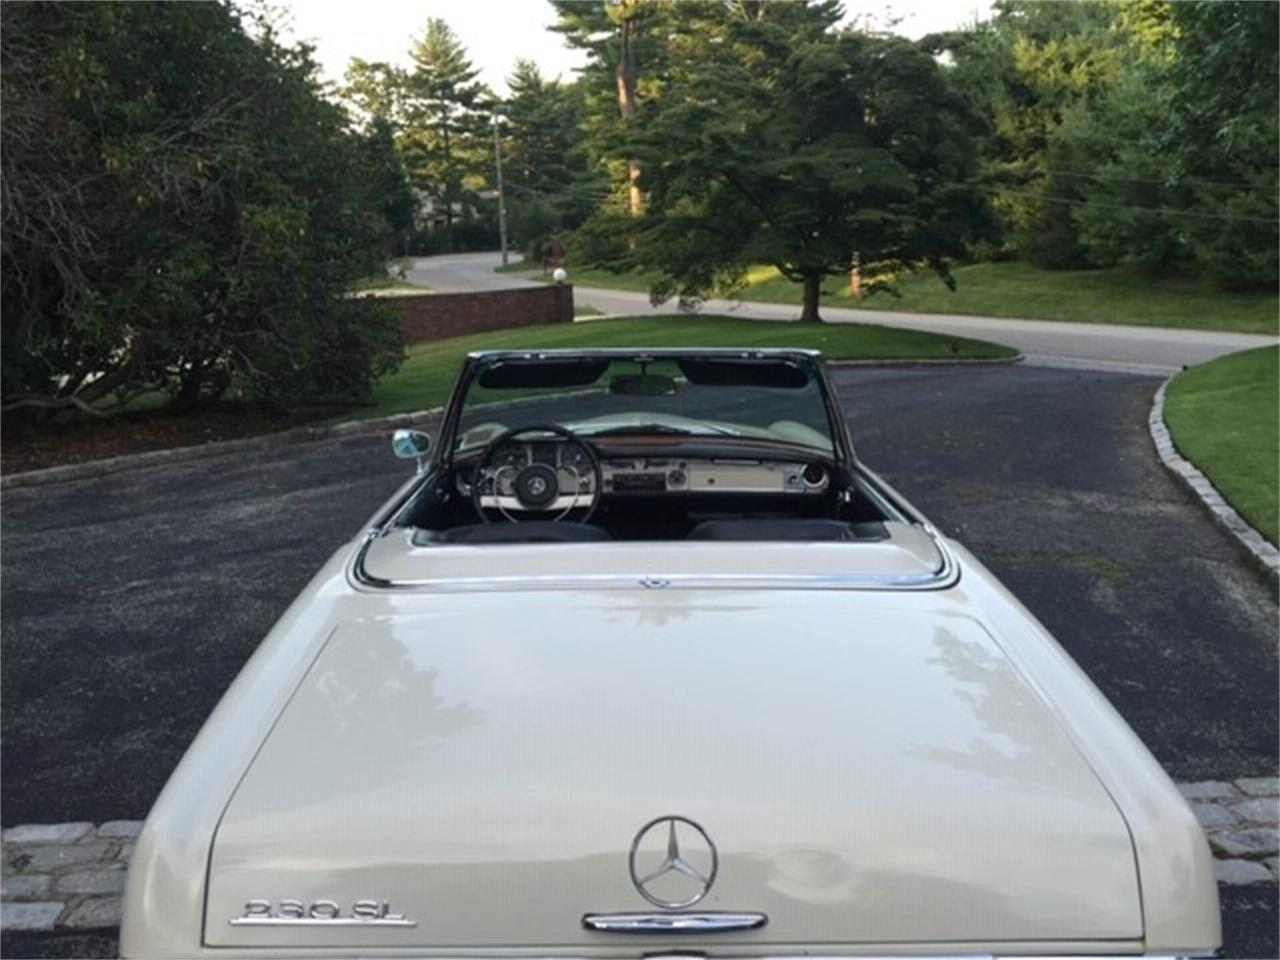 Large Picture of '66 Mercedes-Benz 230SL located in New York - $55,000.00 Offered by a Private Seller - OUD1